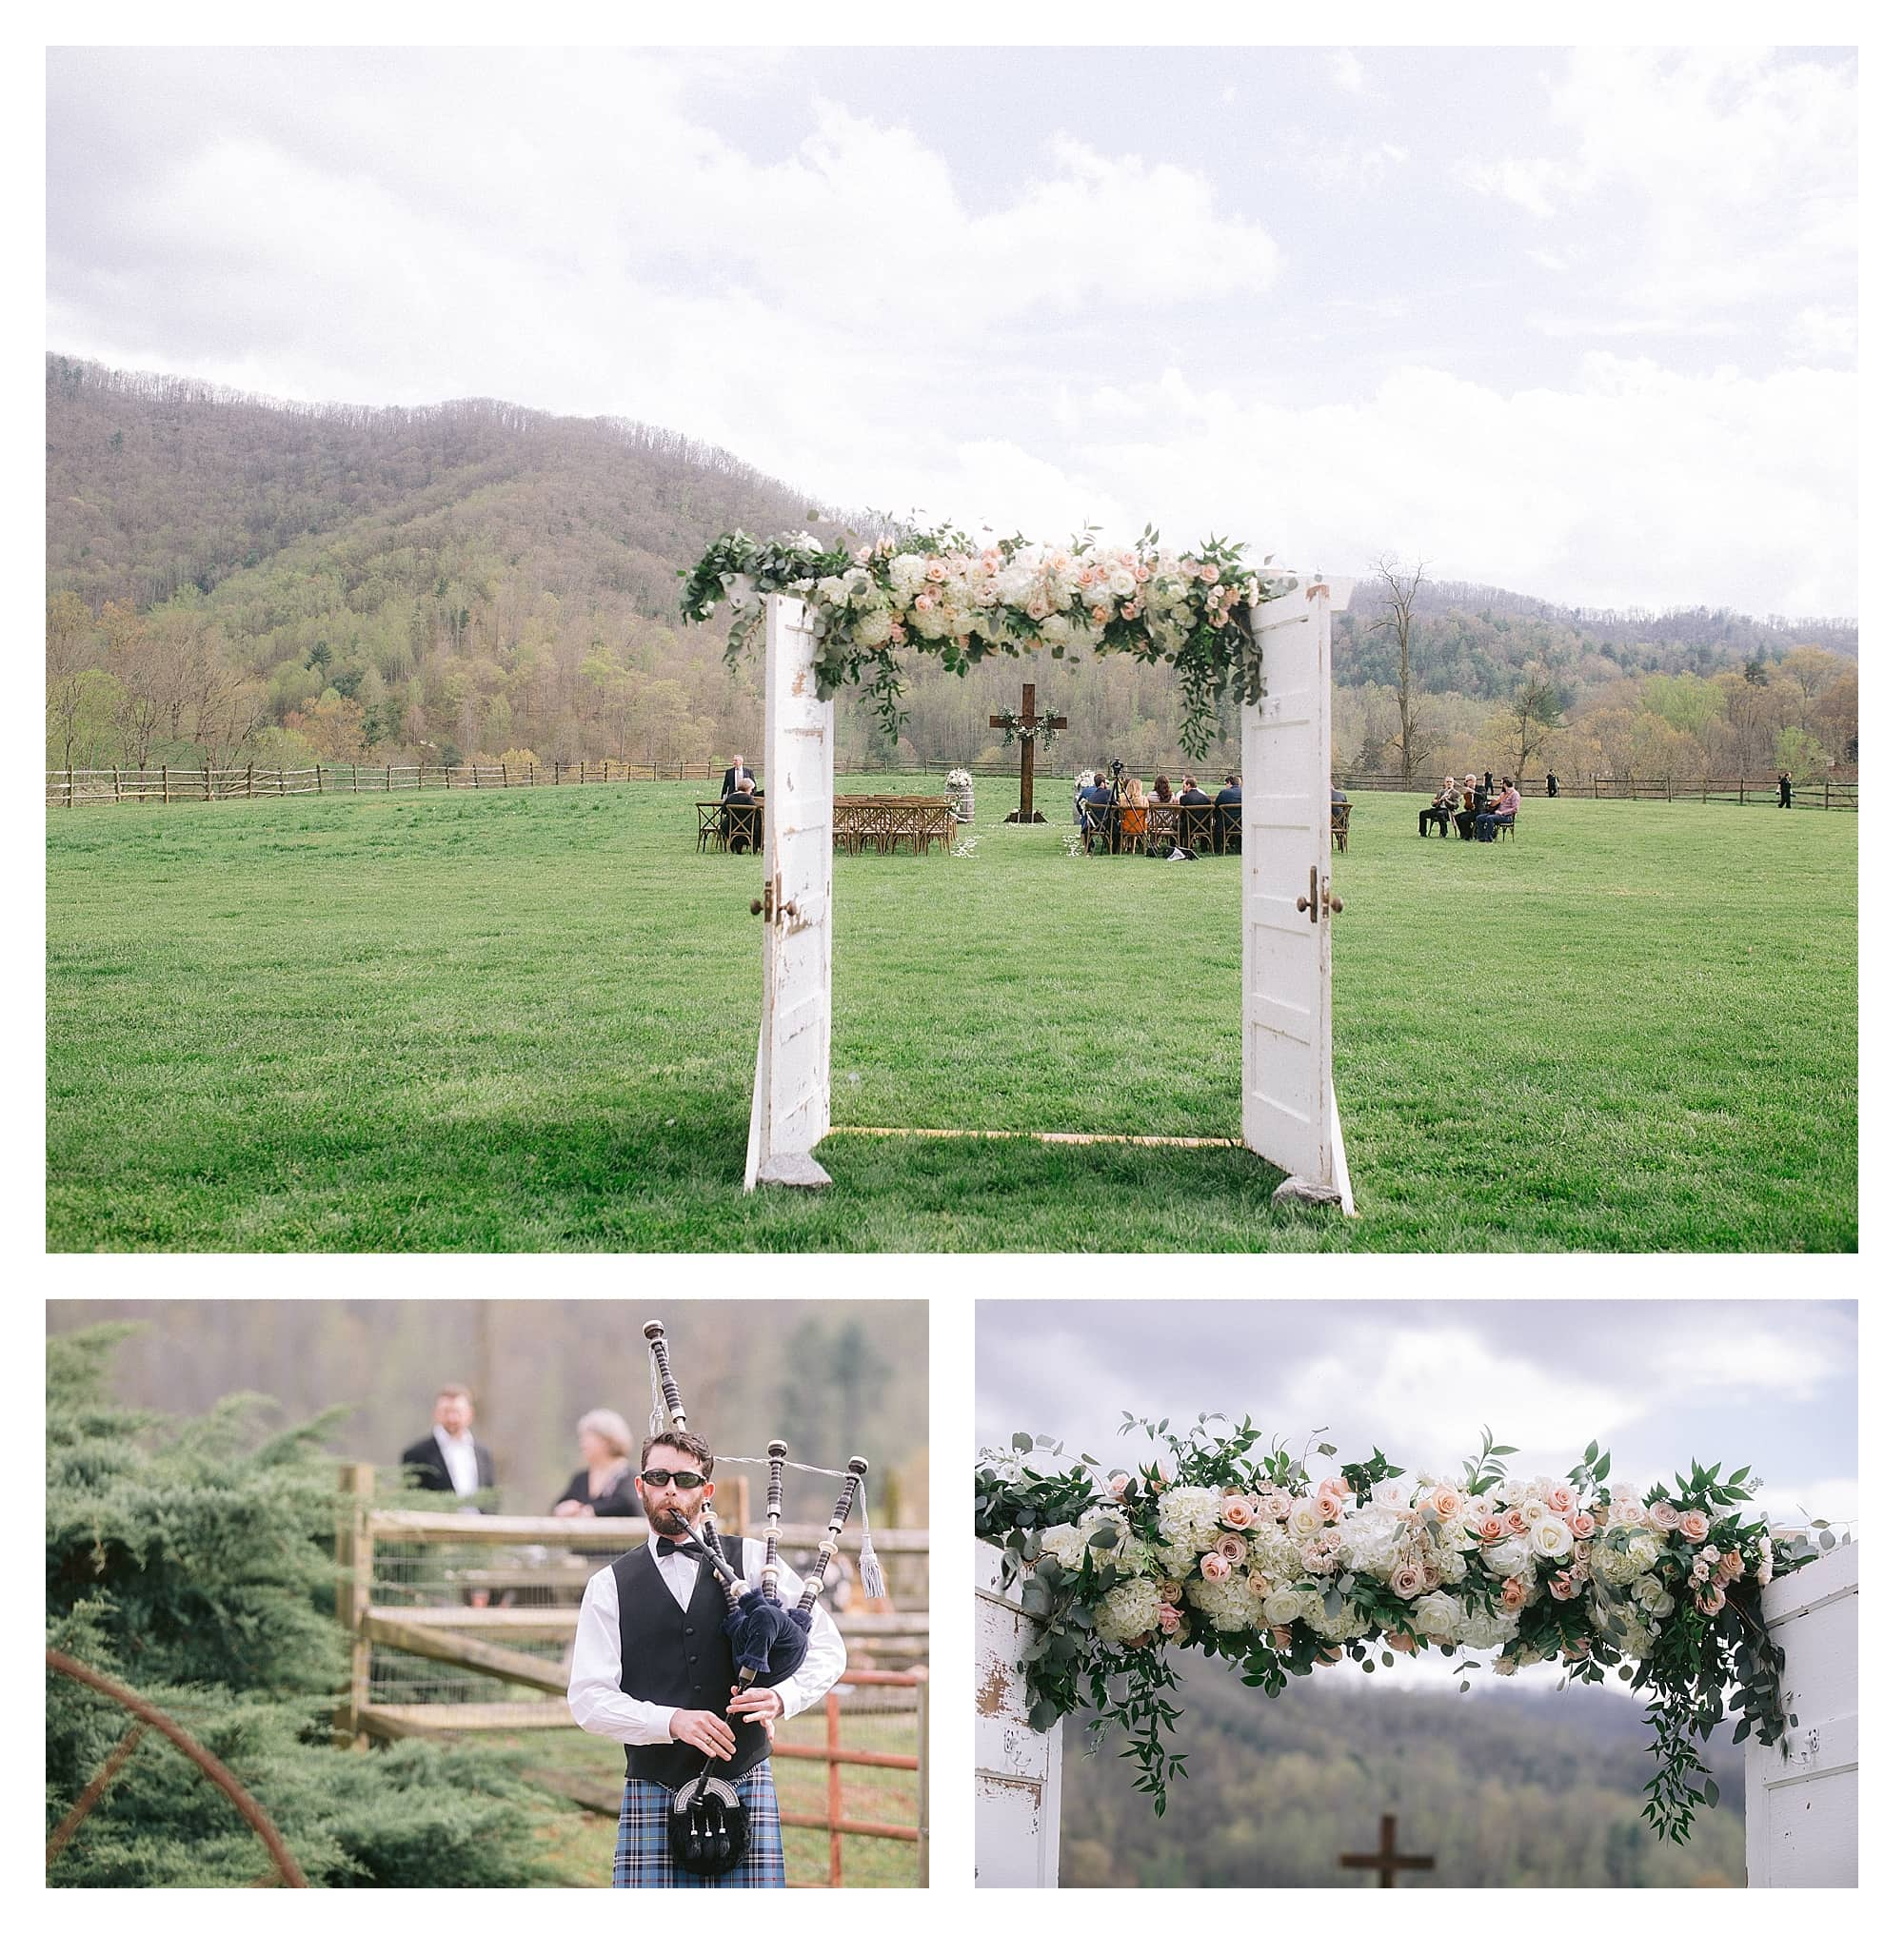 Wedding ceremony decor - wedding arbour made with two old doors and cream and peach flowers across the top